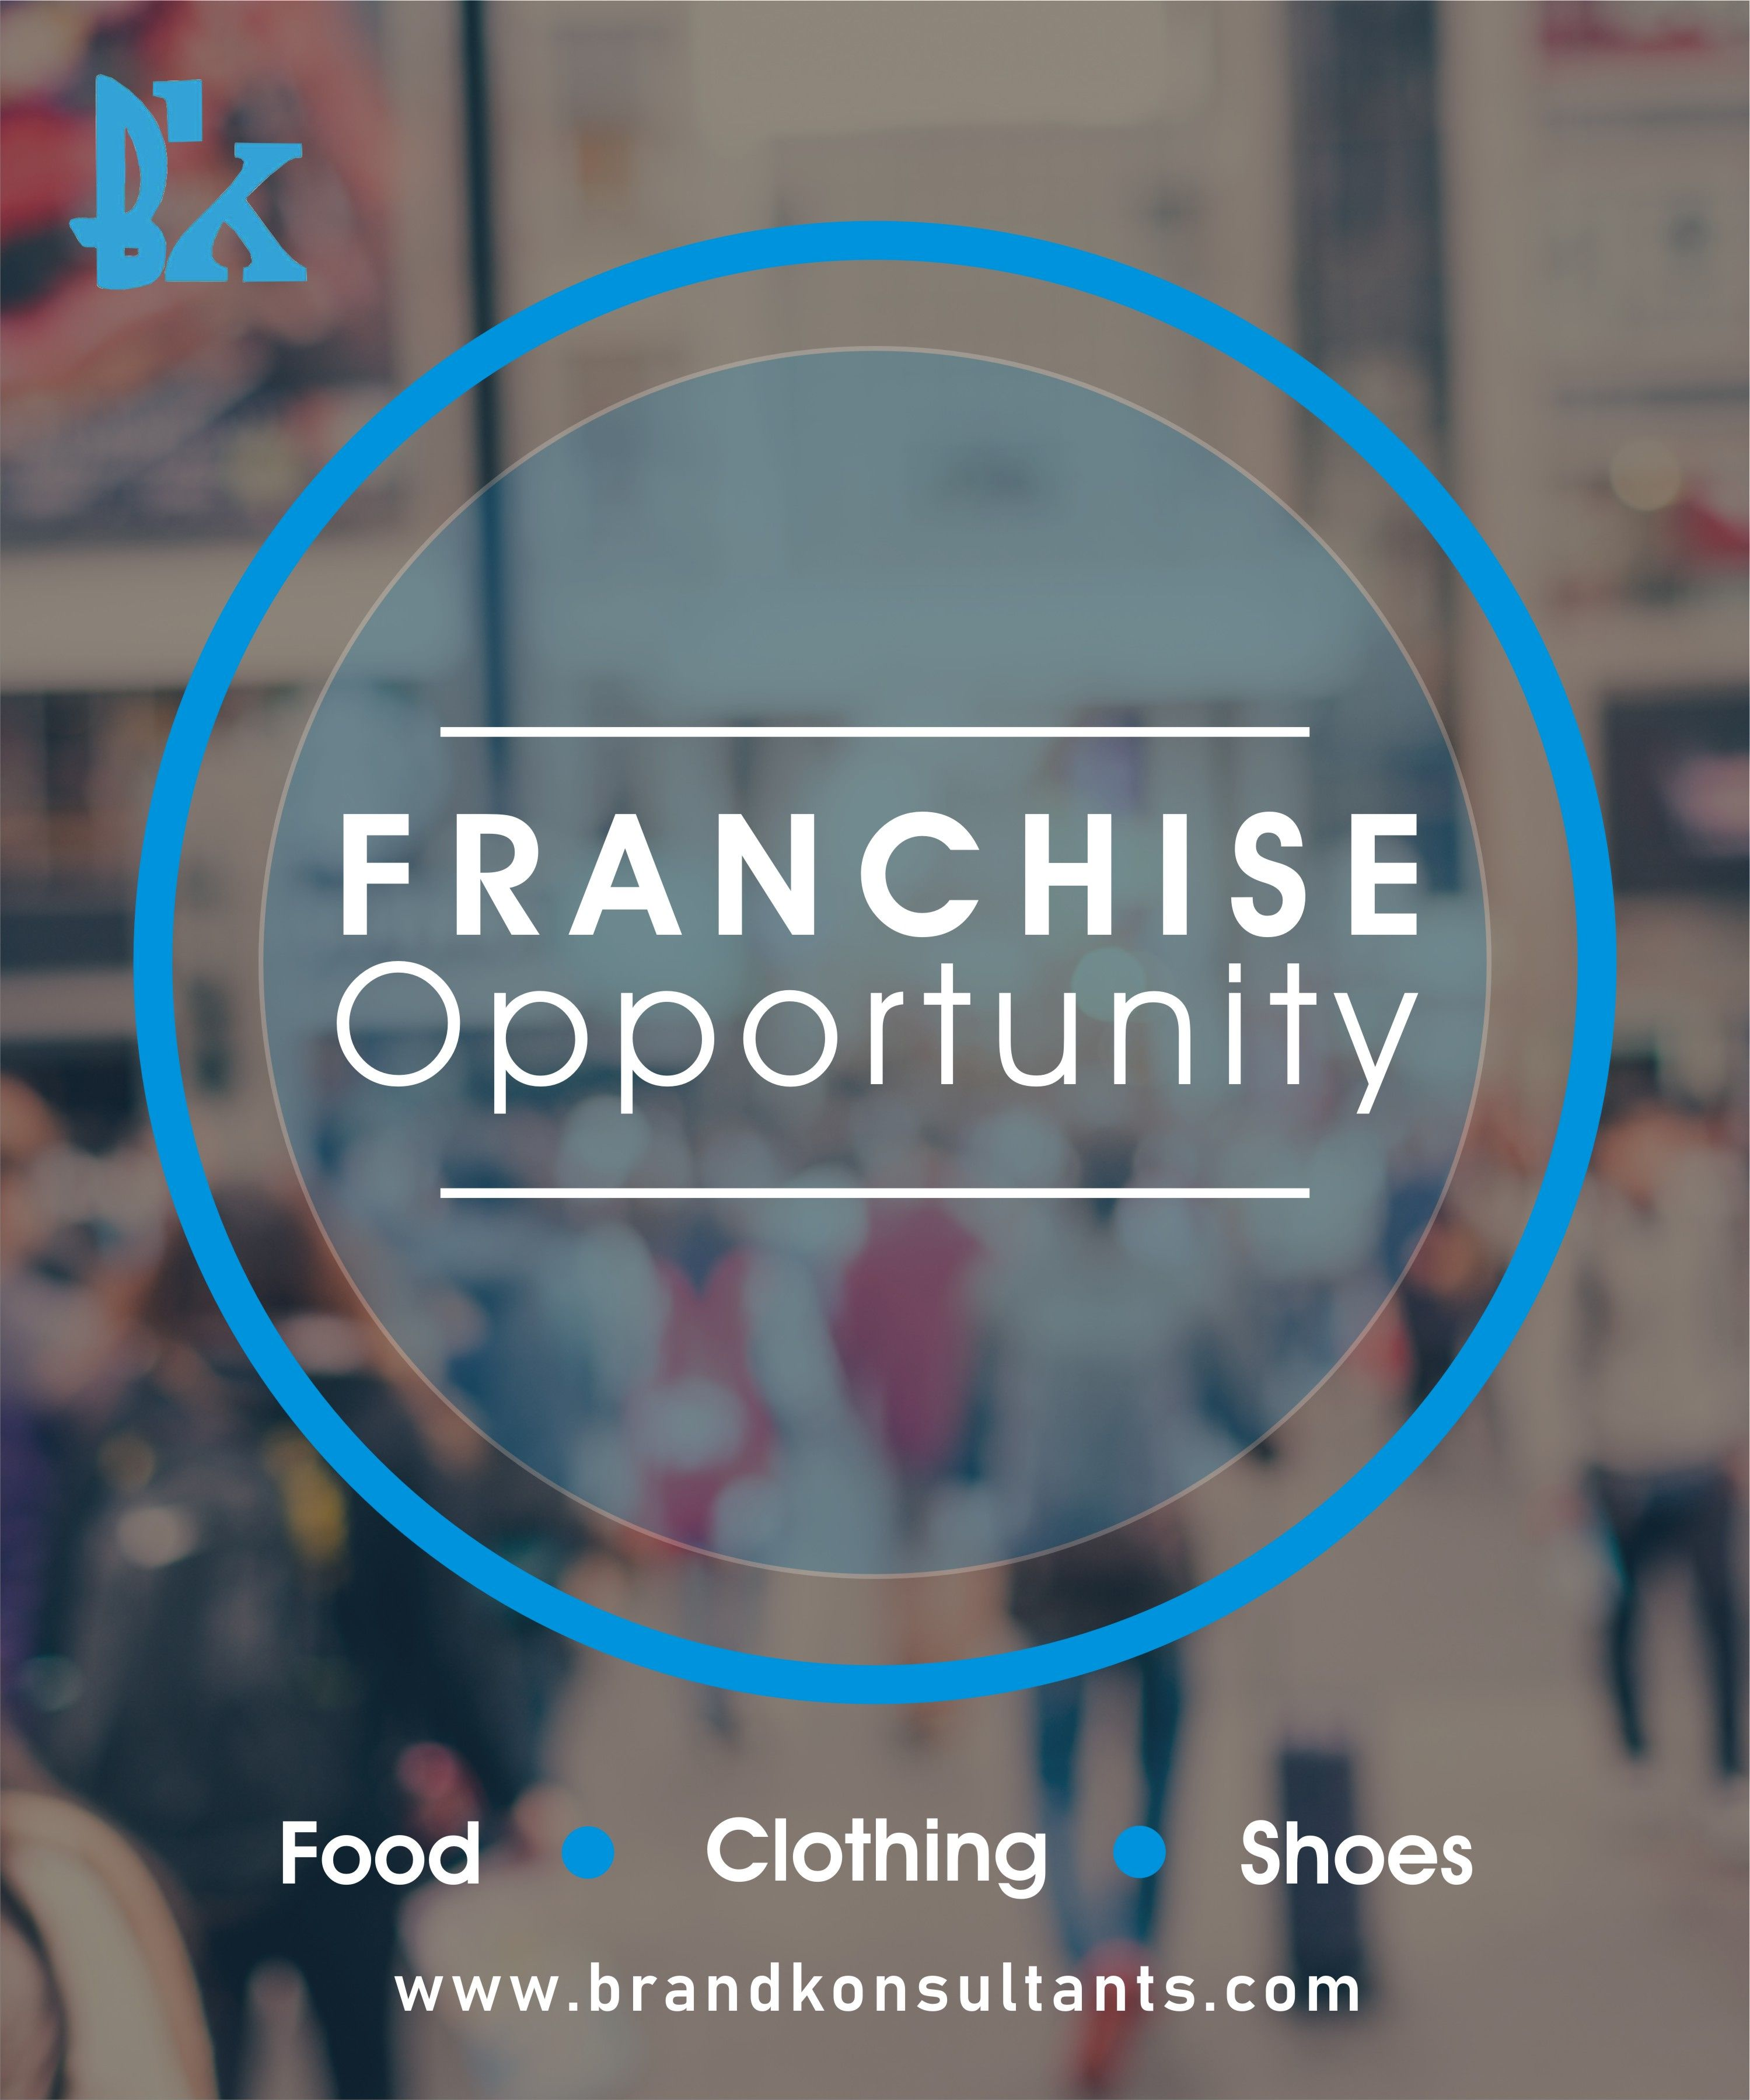 What is it like to own a franchise? - Quora